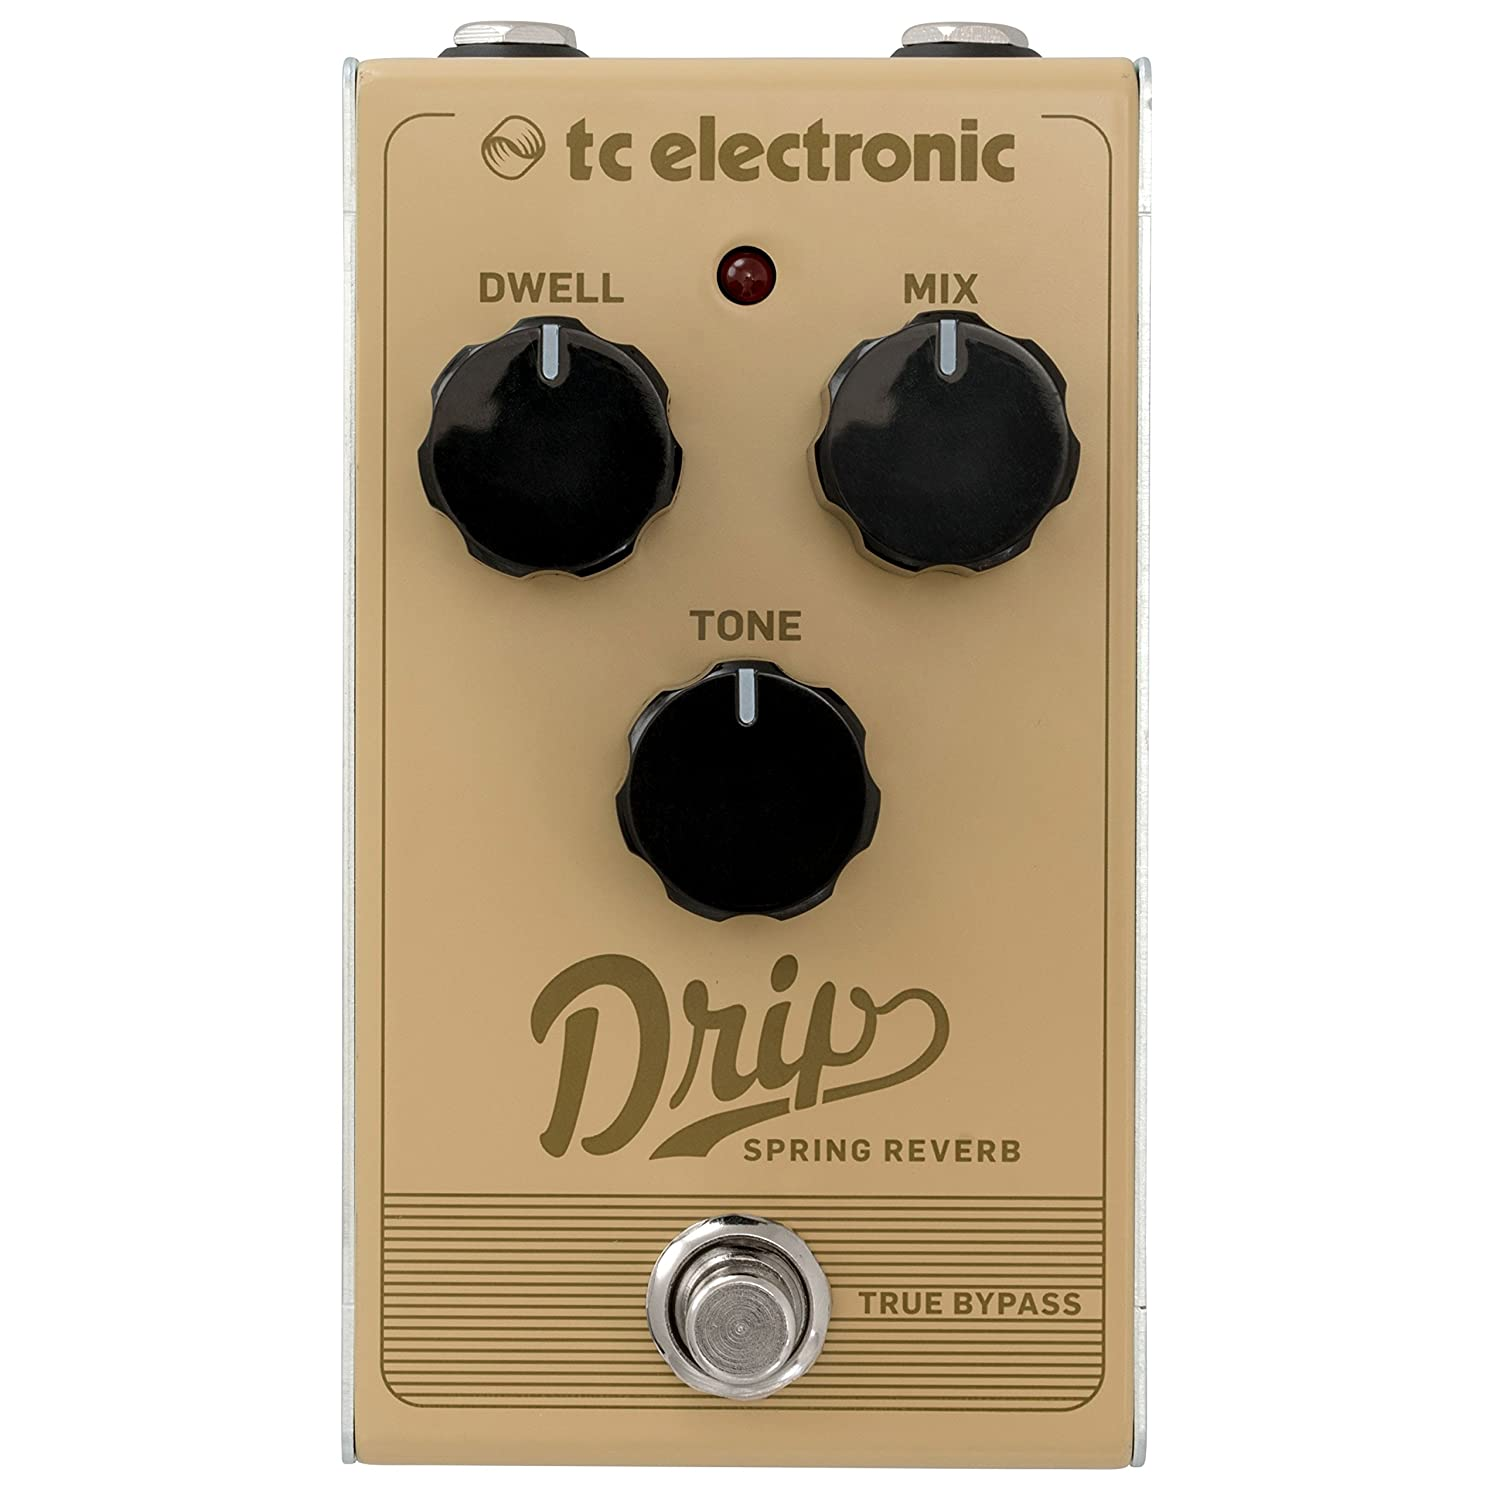 TC Electronic Drip Spring Reverb verstellbar Dwell/Mix und Ton für Sparkling Reverb Sound Music Group